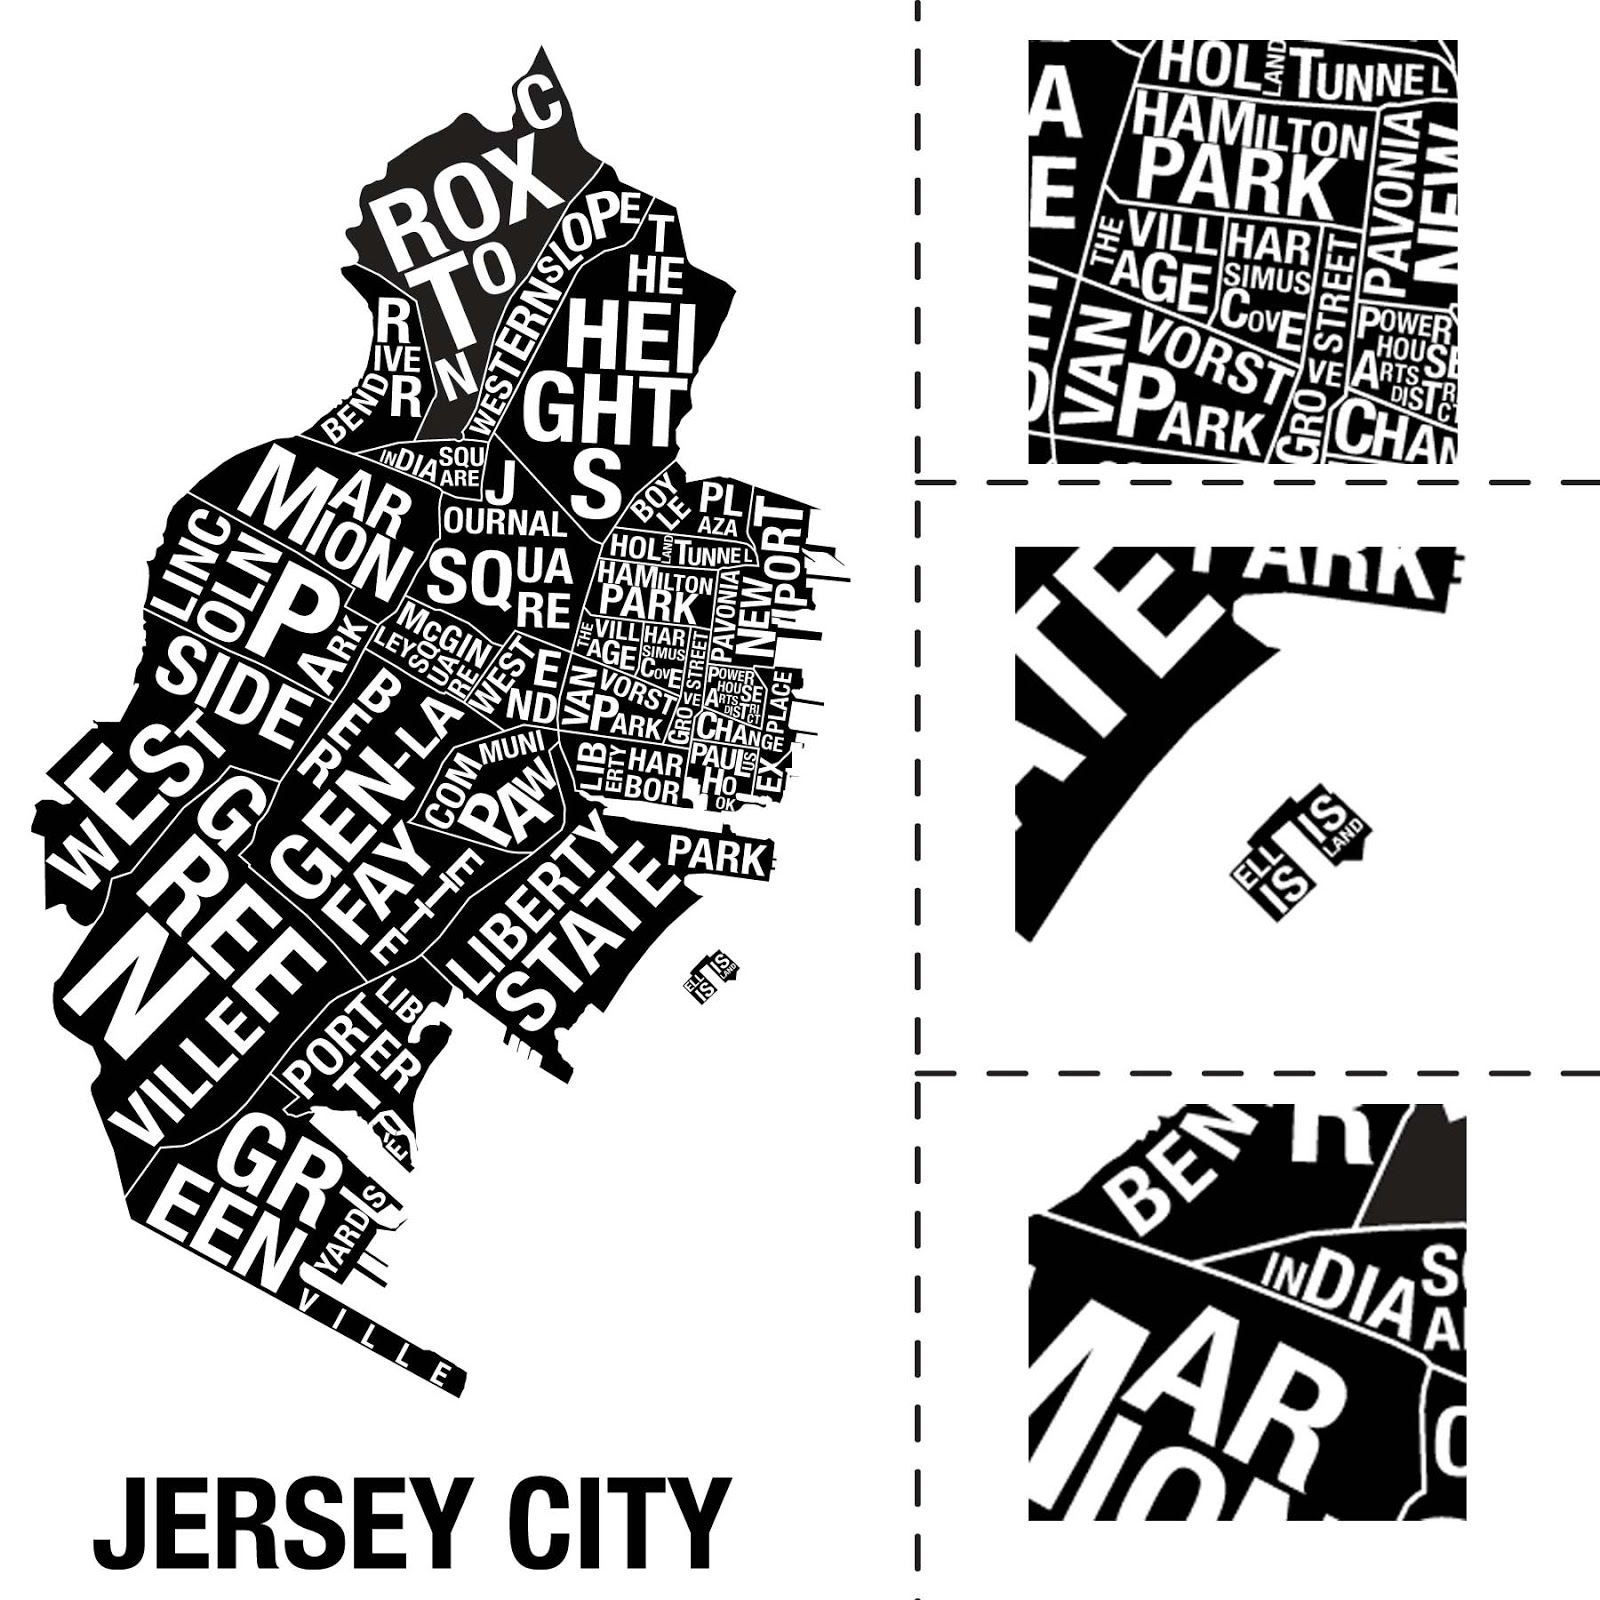 jersey city neighborhood map